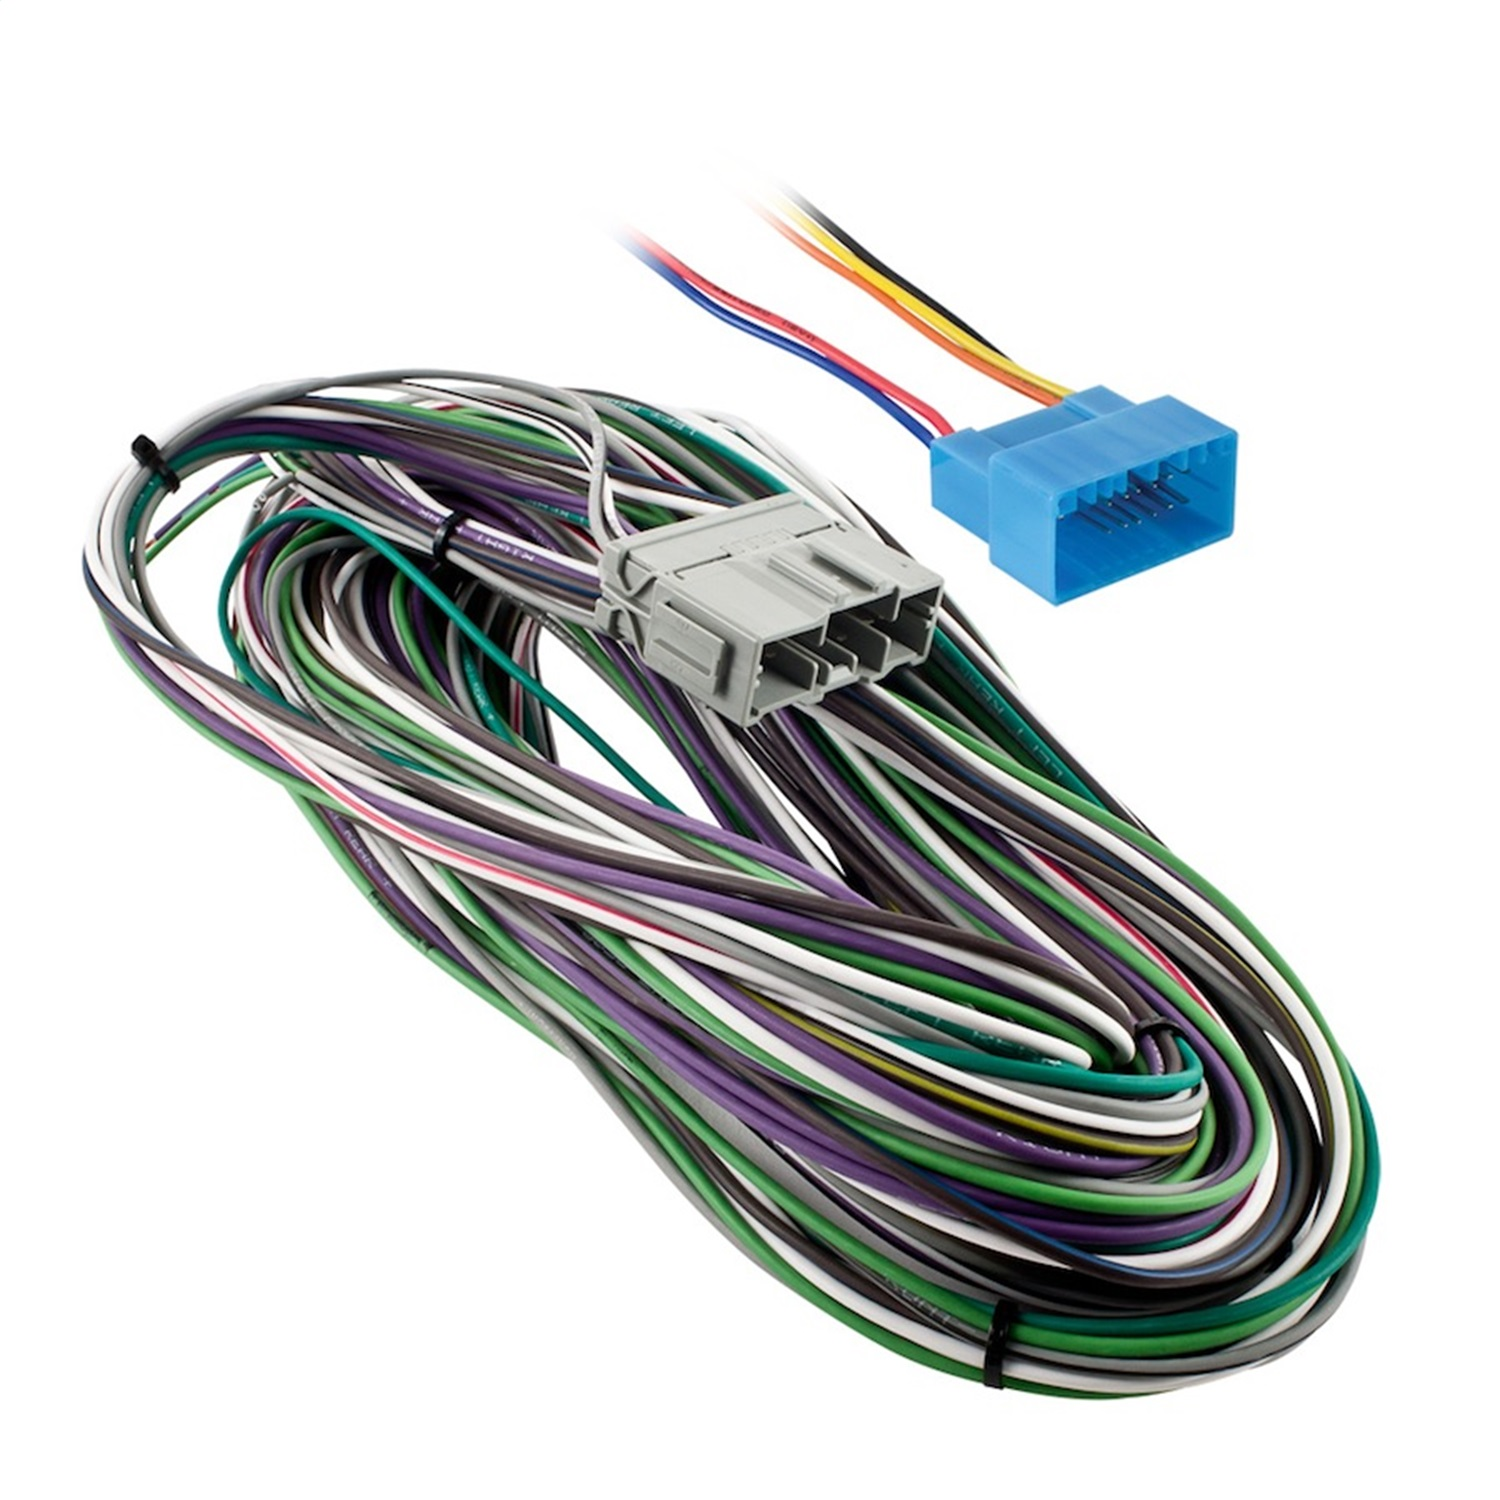 Metra 70-1719 Custom Fit Amp Bypass Harness Fits 03-11 Element